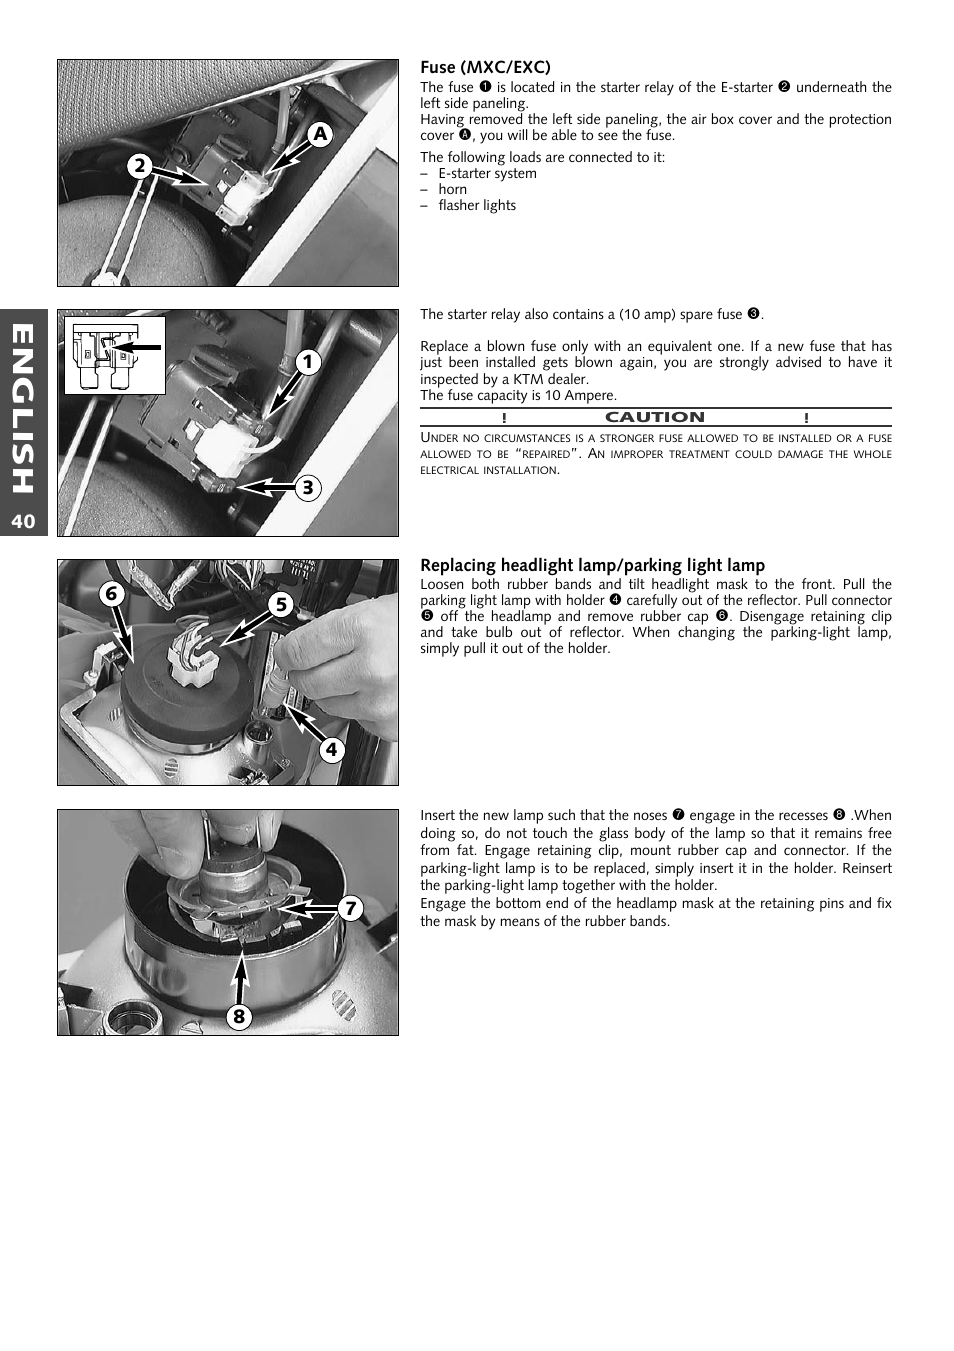 medium resolution of english ktm 250 exc racing user manual page 41 62